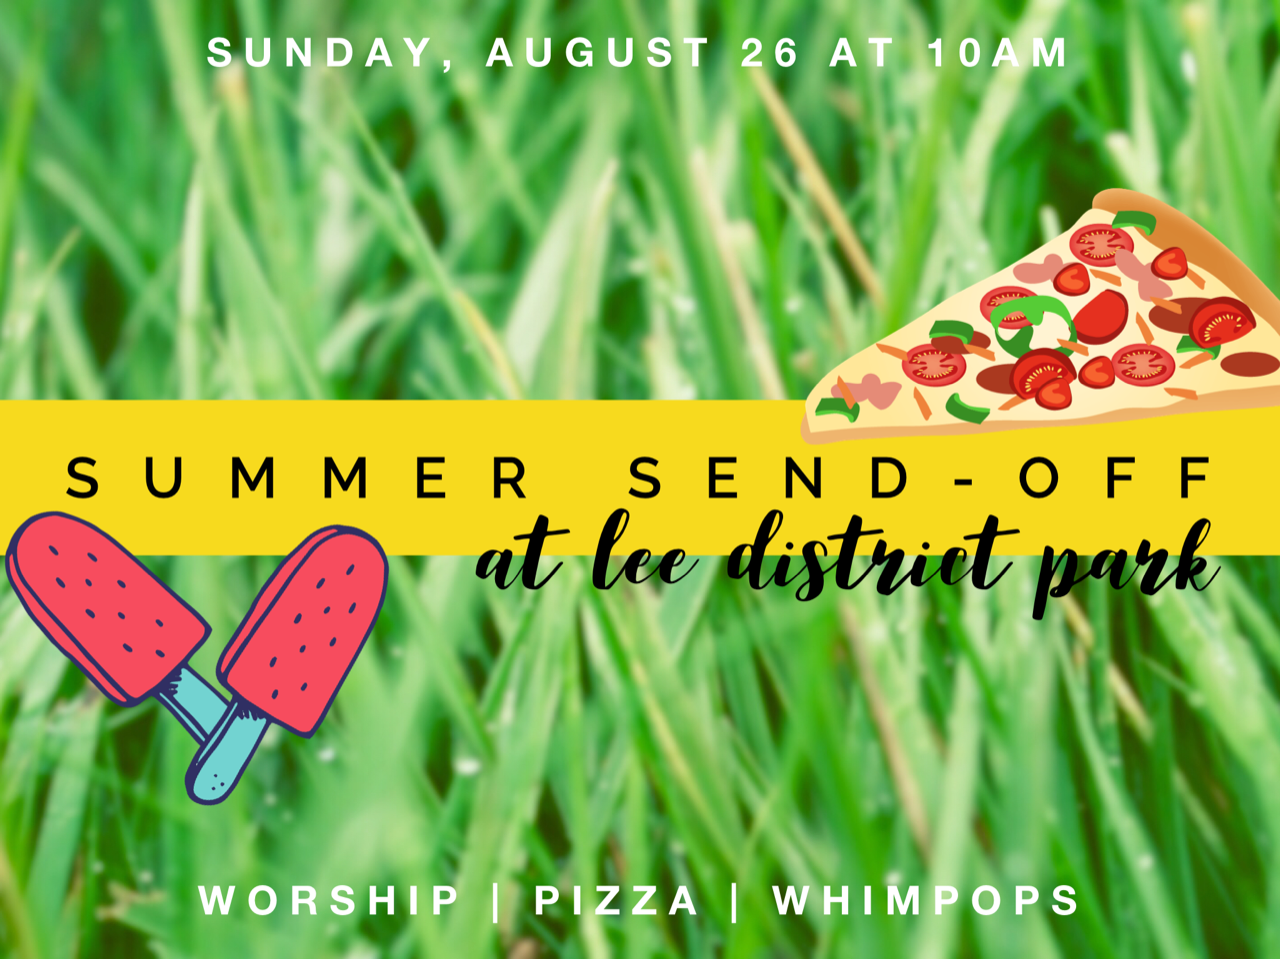 Summer Send-Off: Worship & Whimpops in the Park